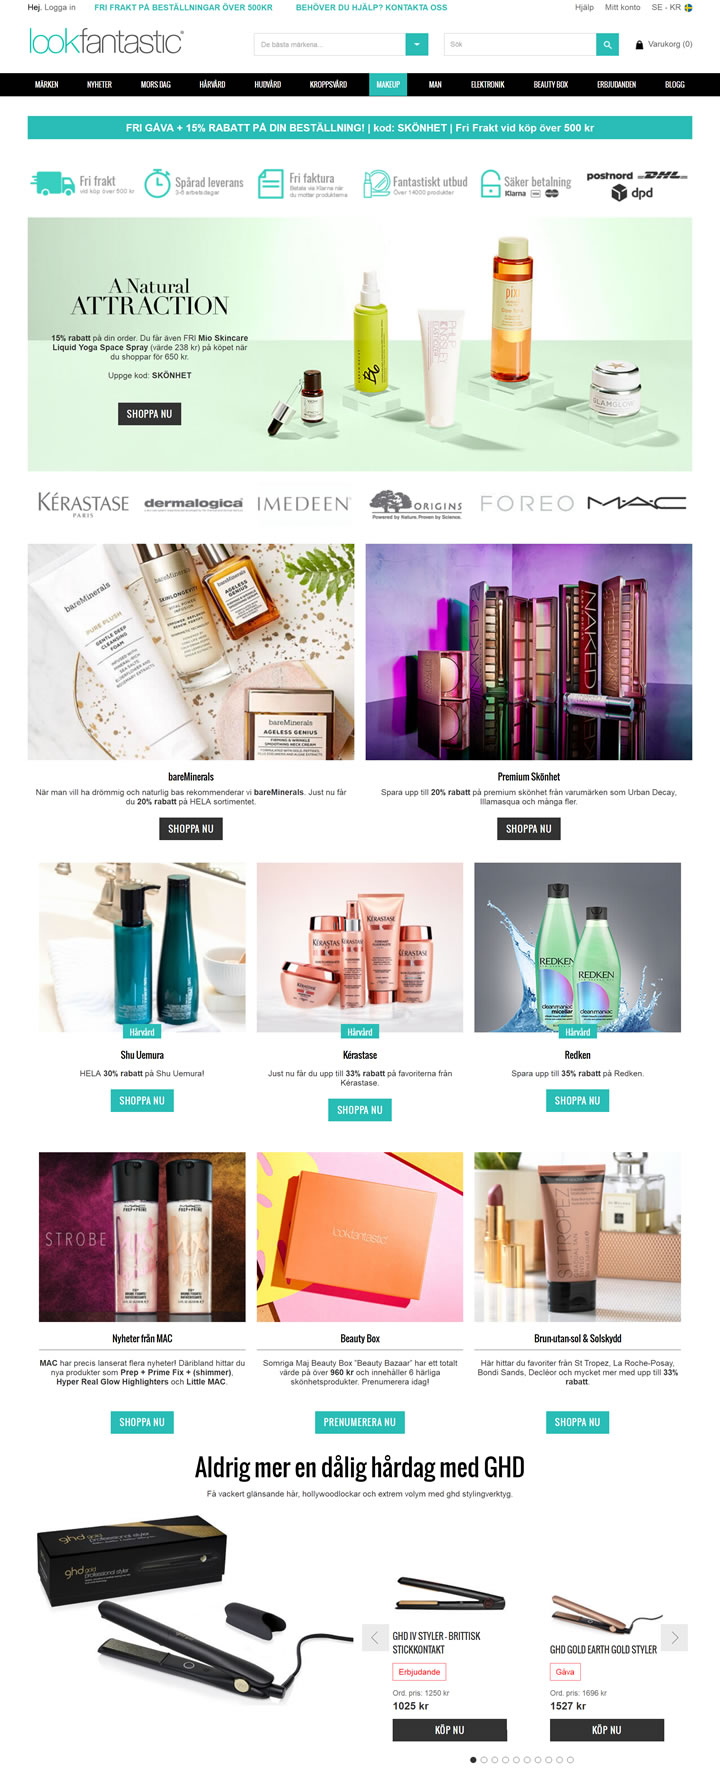 Lookfantastic Sweden: UK Famous Beauty Shopping Site